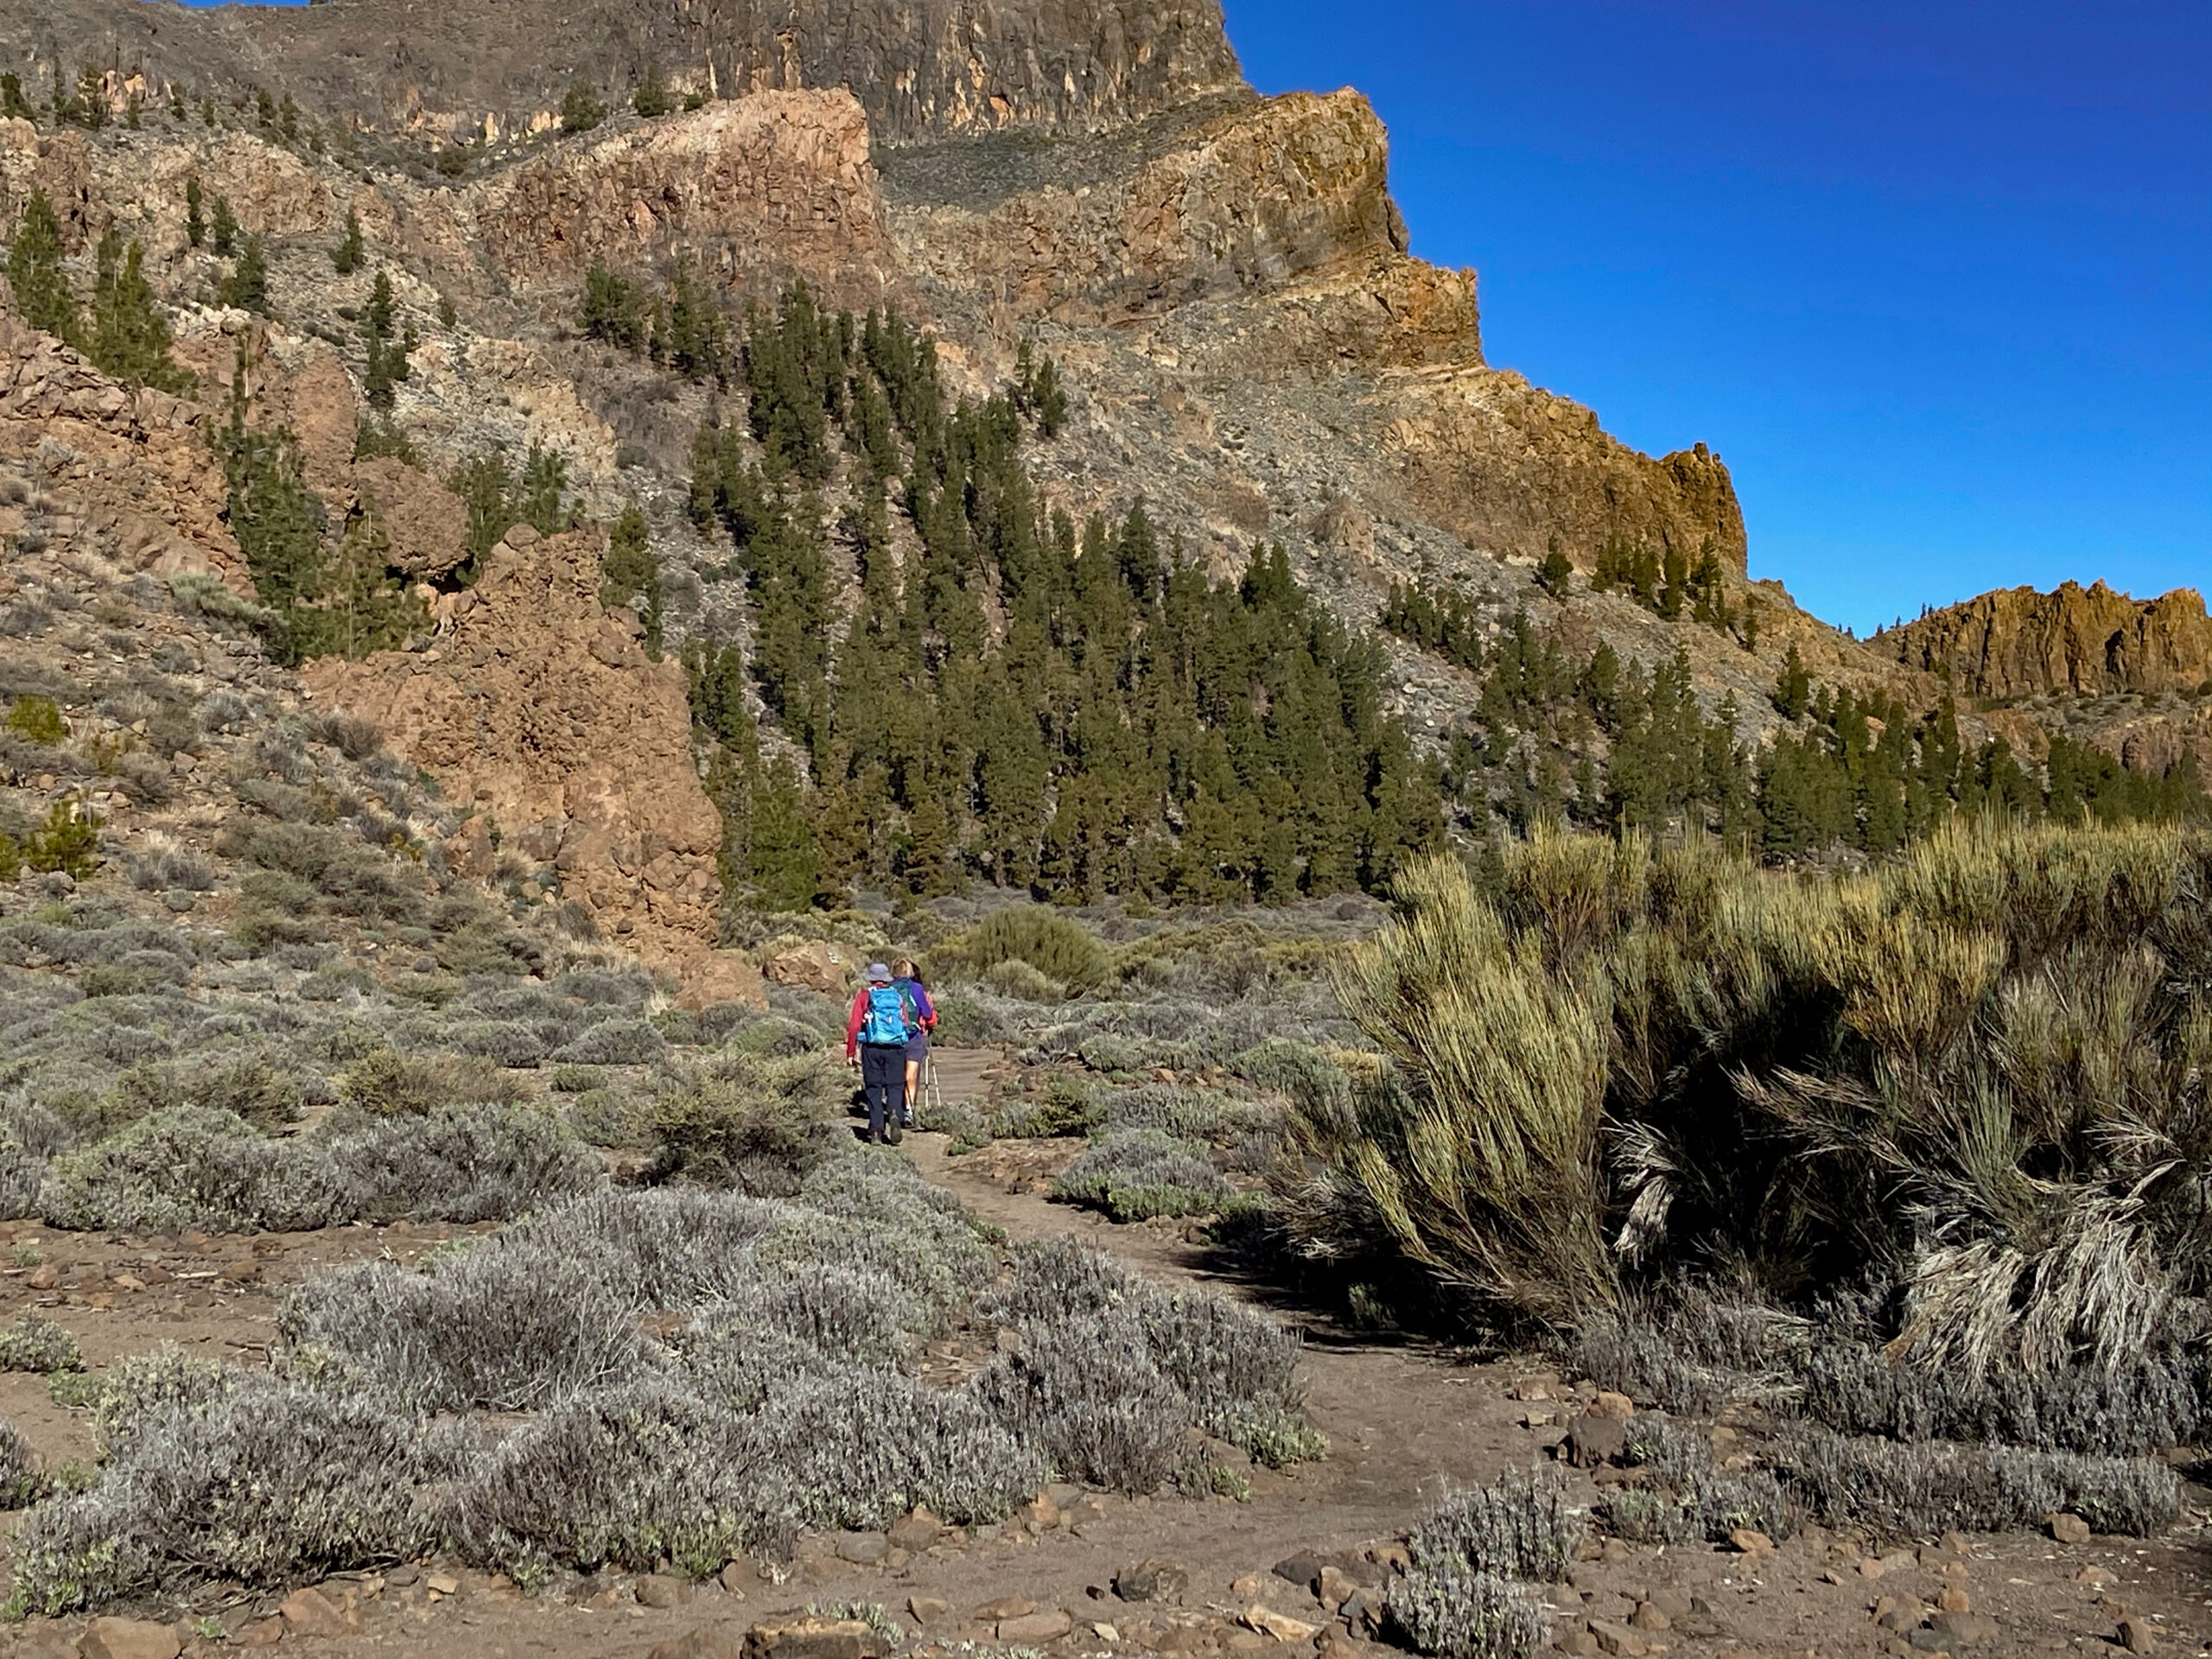 Hiking trail in the national park in front of Montaña El Cedro